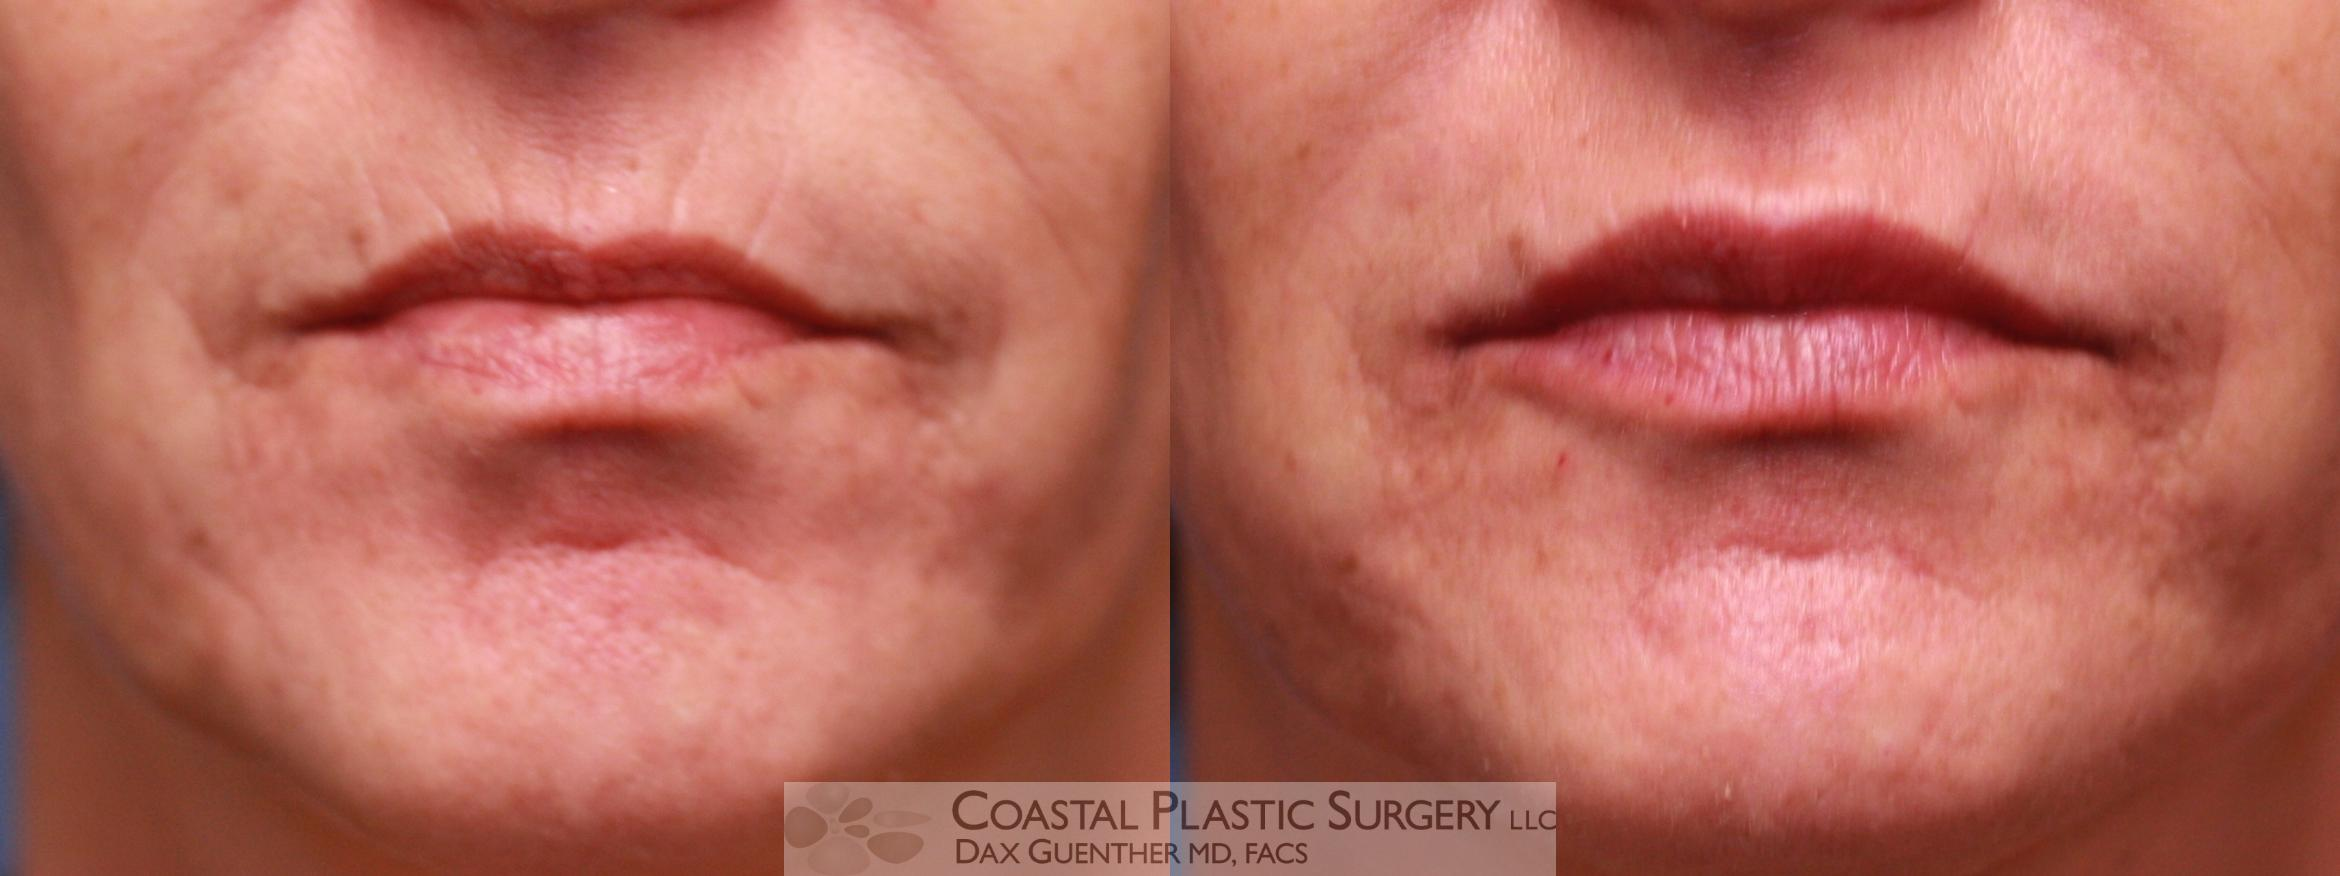 Fillers Before & After Photo | Hingham, MA | Dax Guenther, MD: Coastal Plastic Surgery